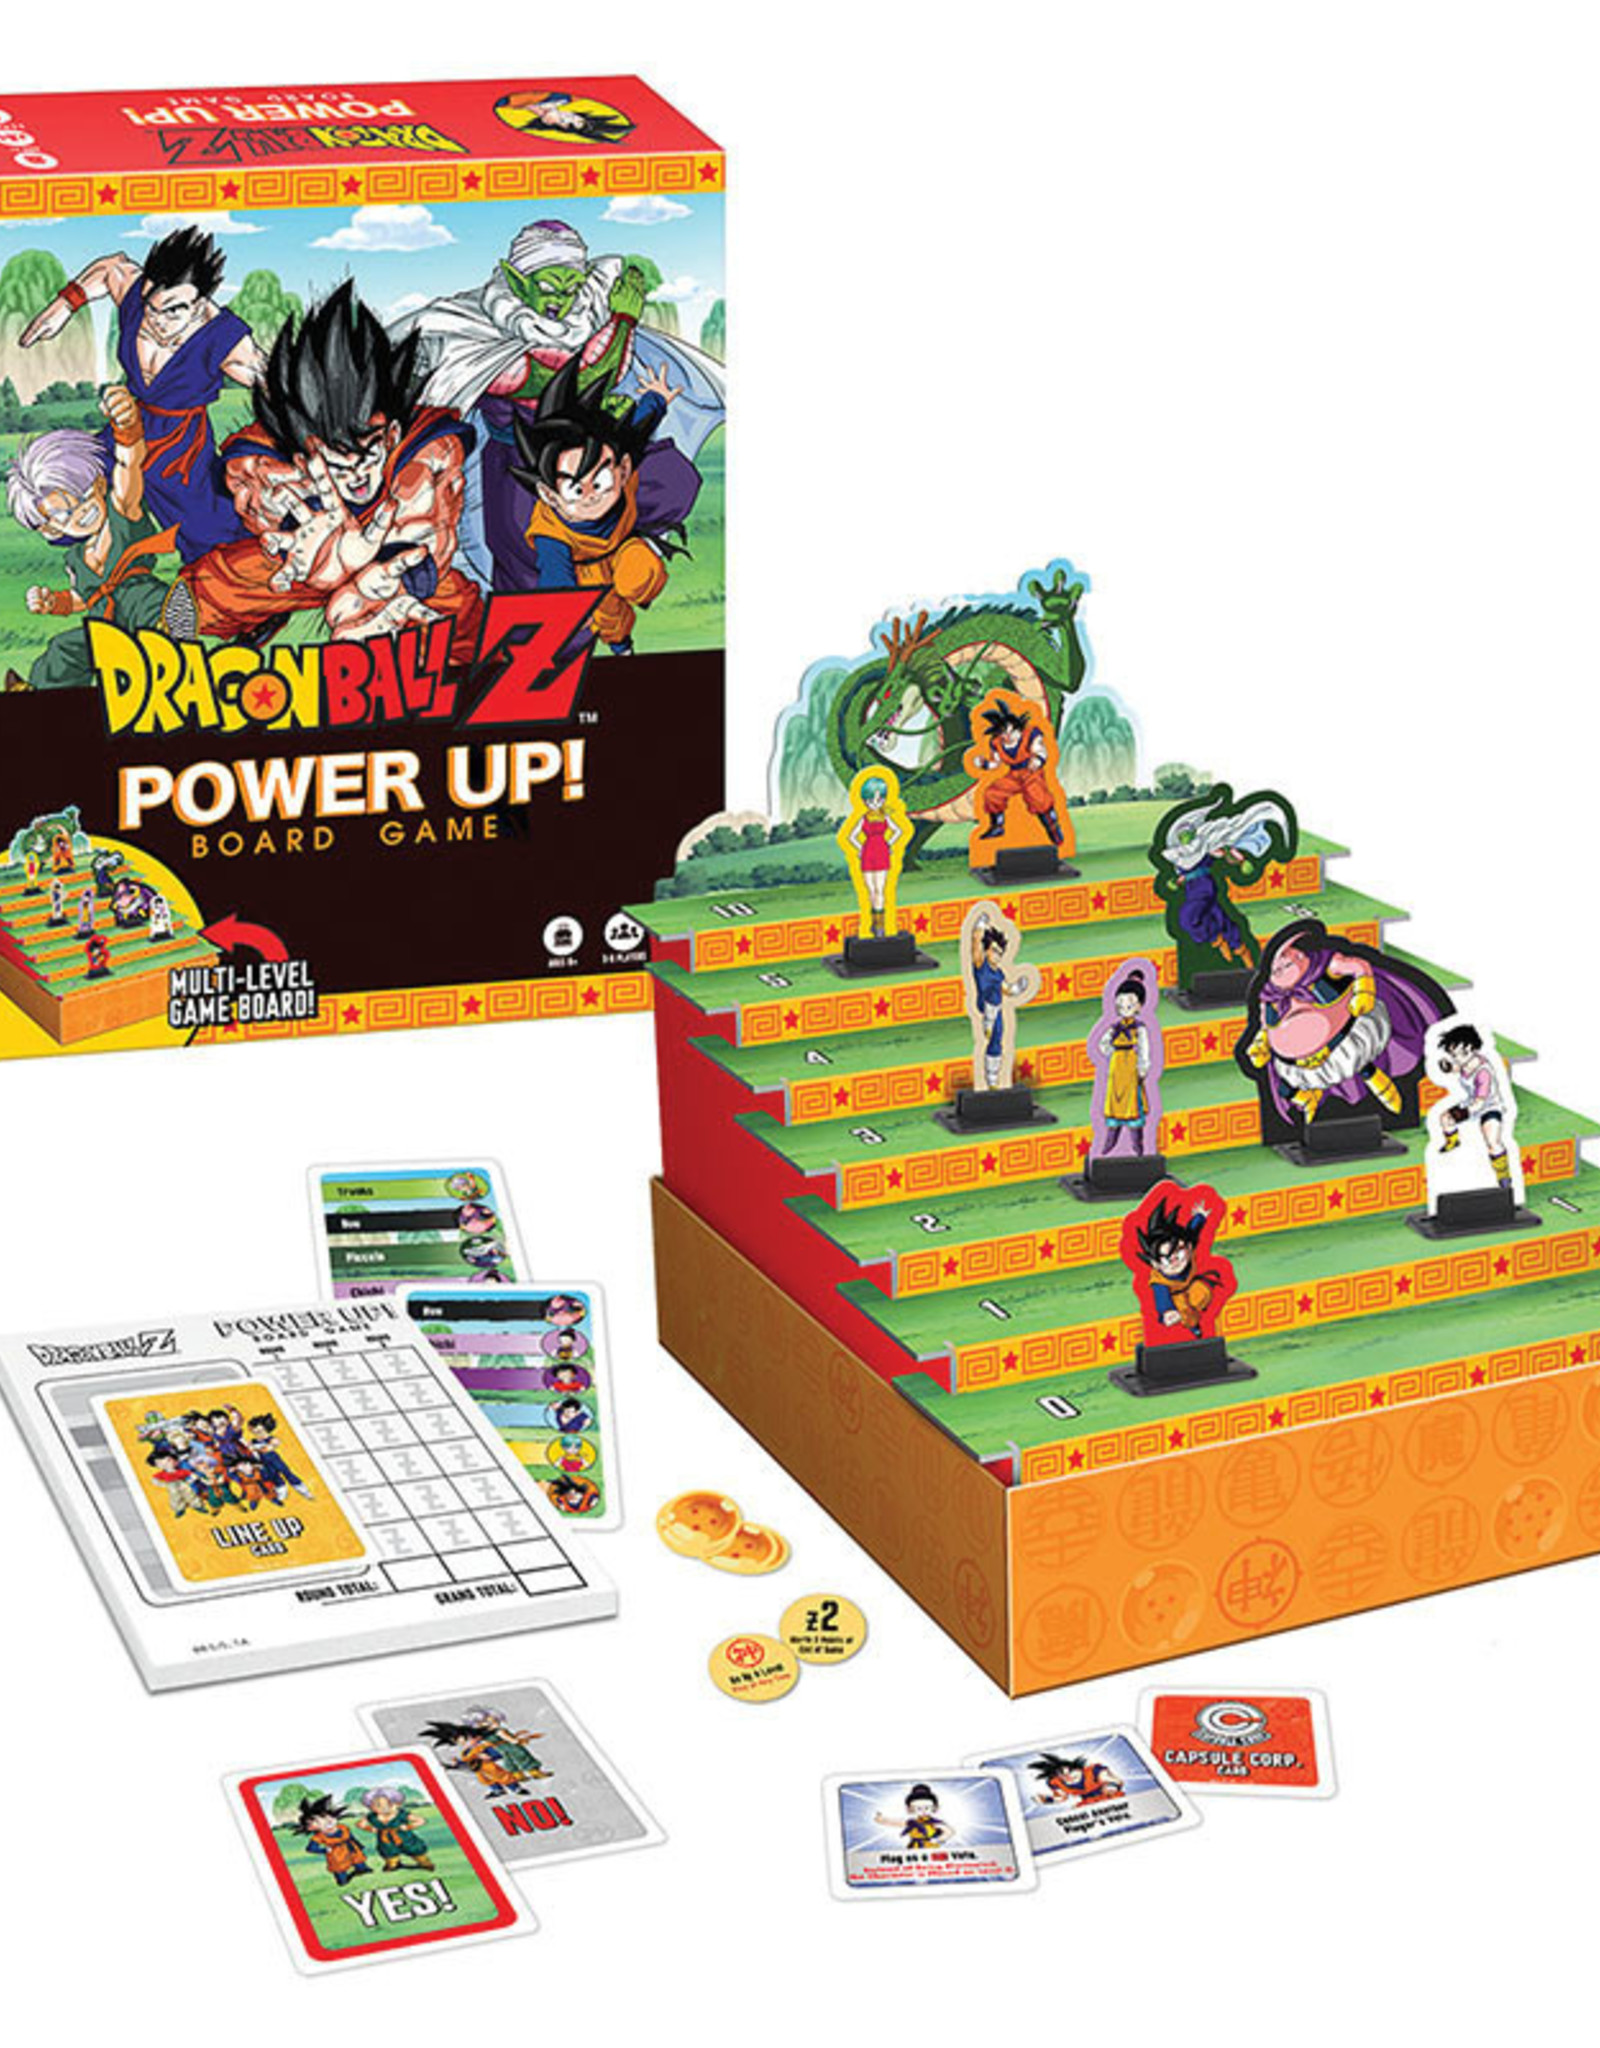 The Op Dragon Ball Z Power Up Board Game